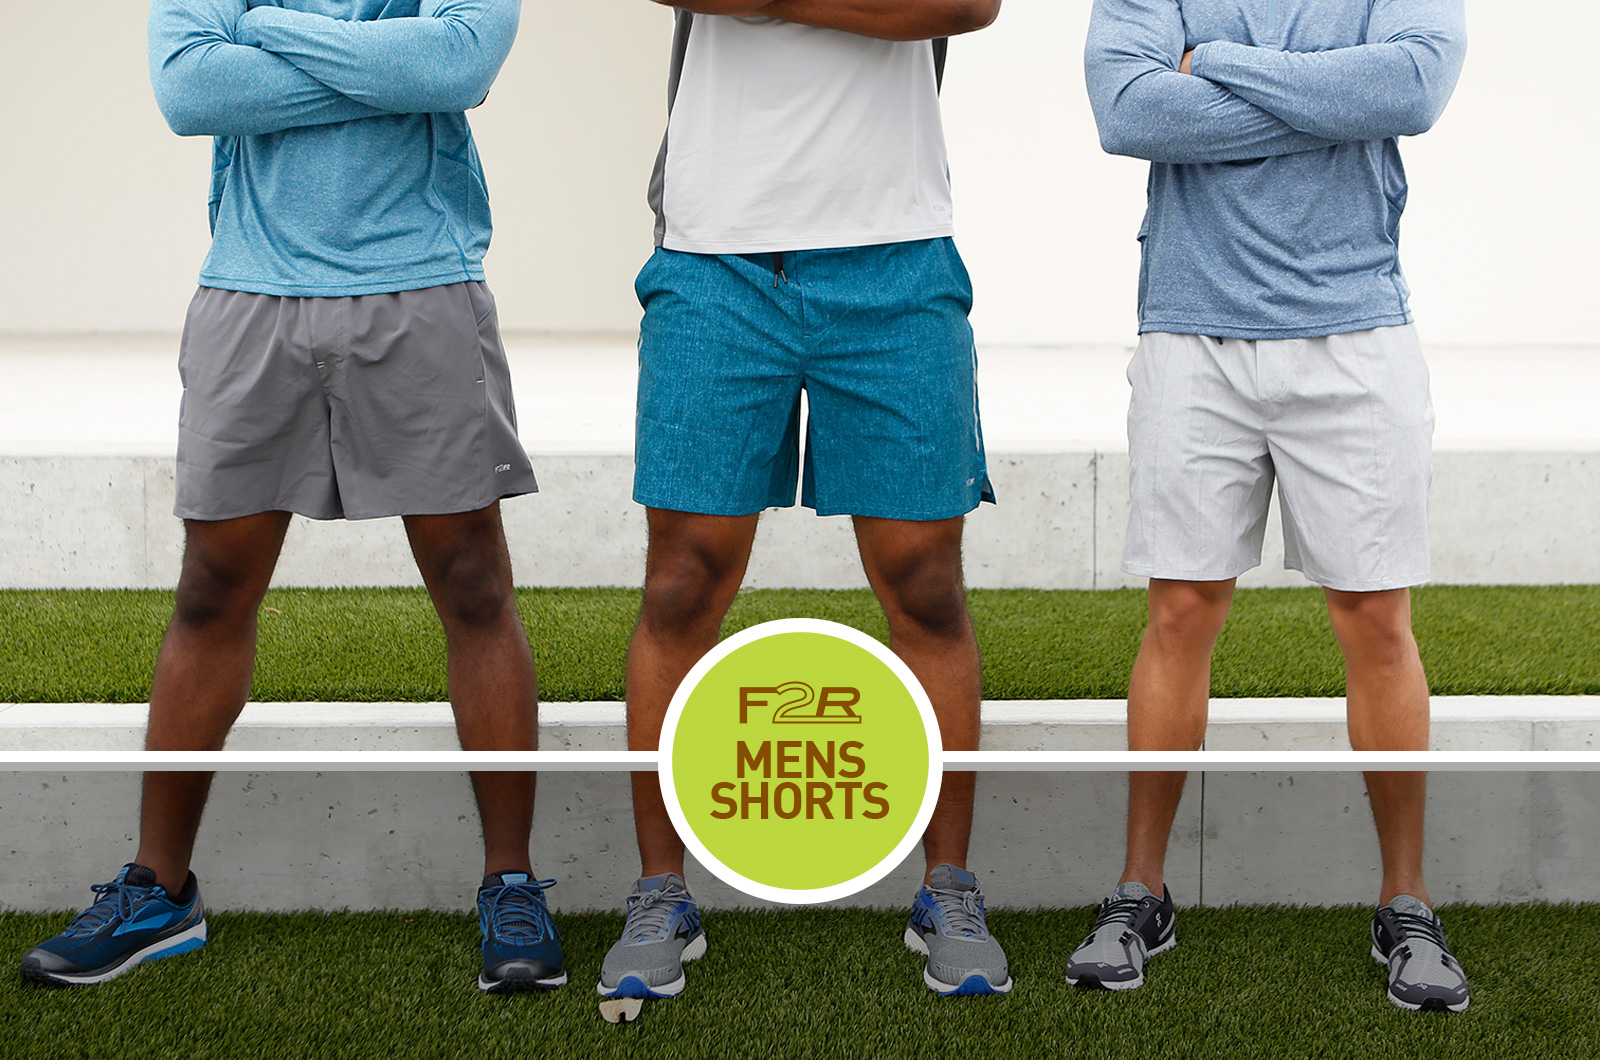 Get Comfortable & Versatile Running Shorts For All Levels From Fit2Run